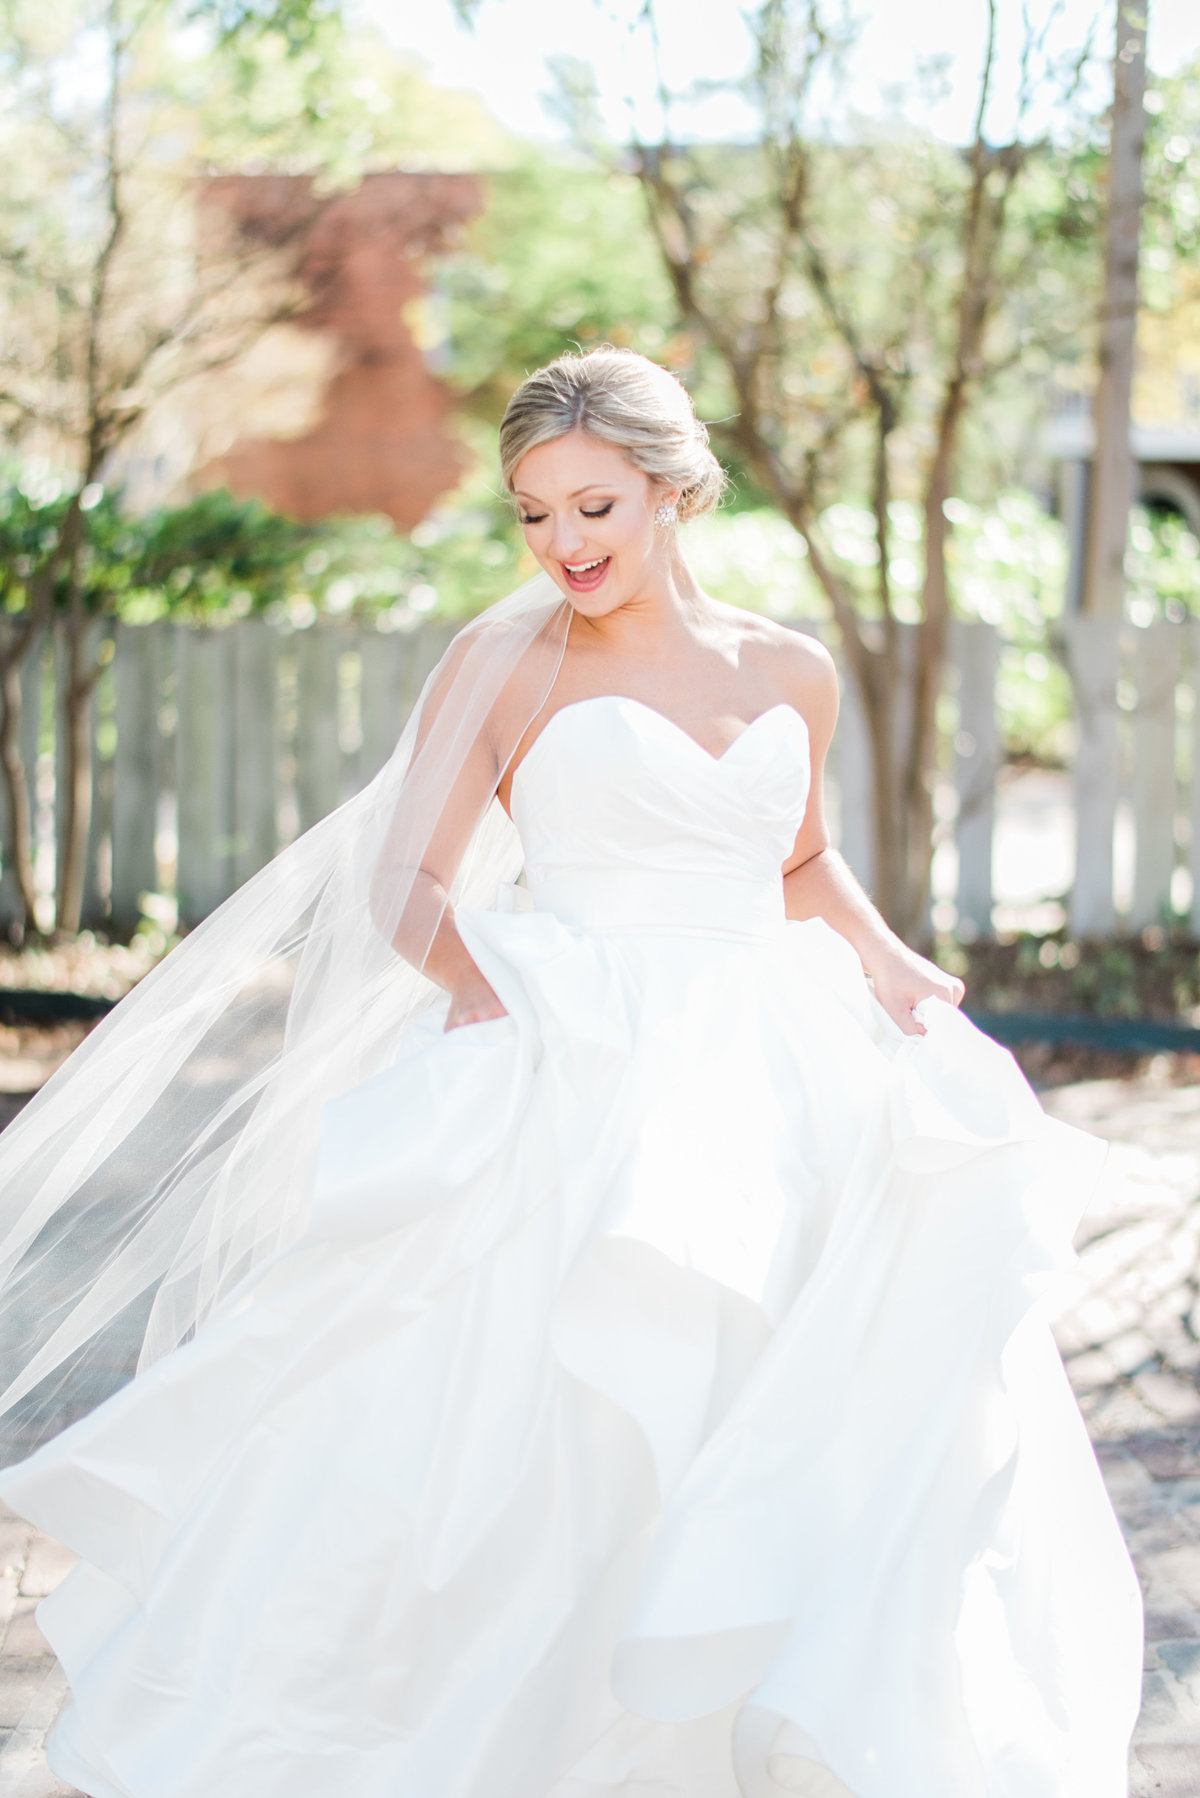 wilmington, nc wedding photo